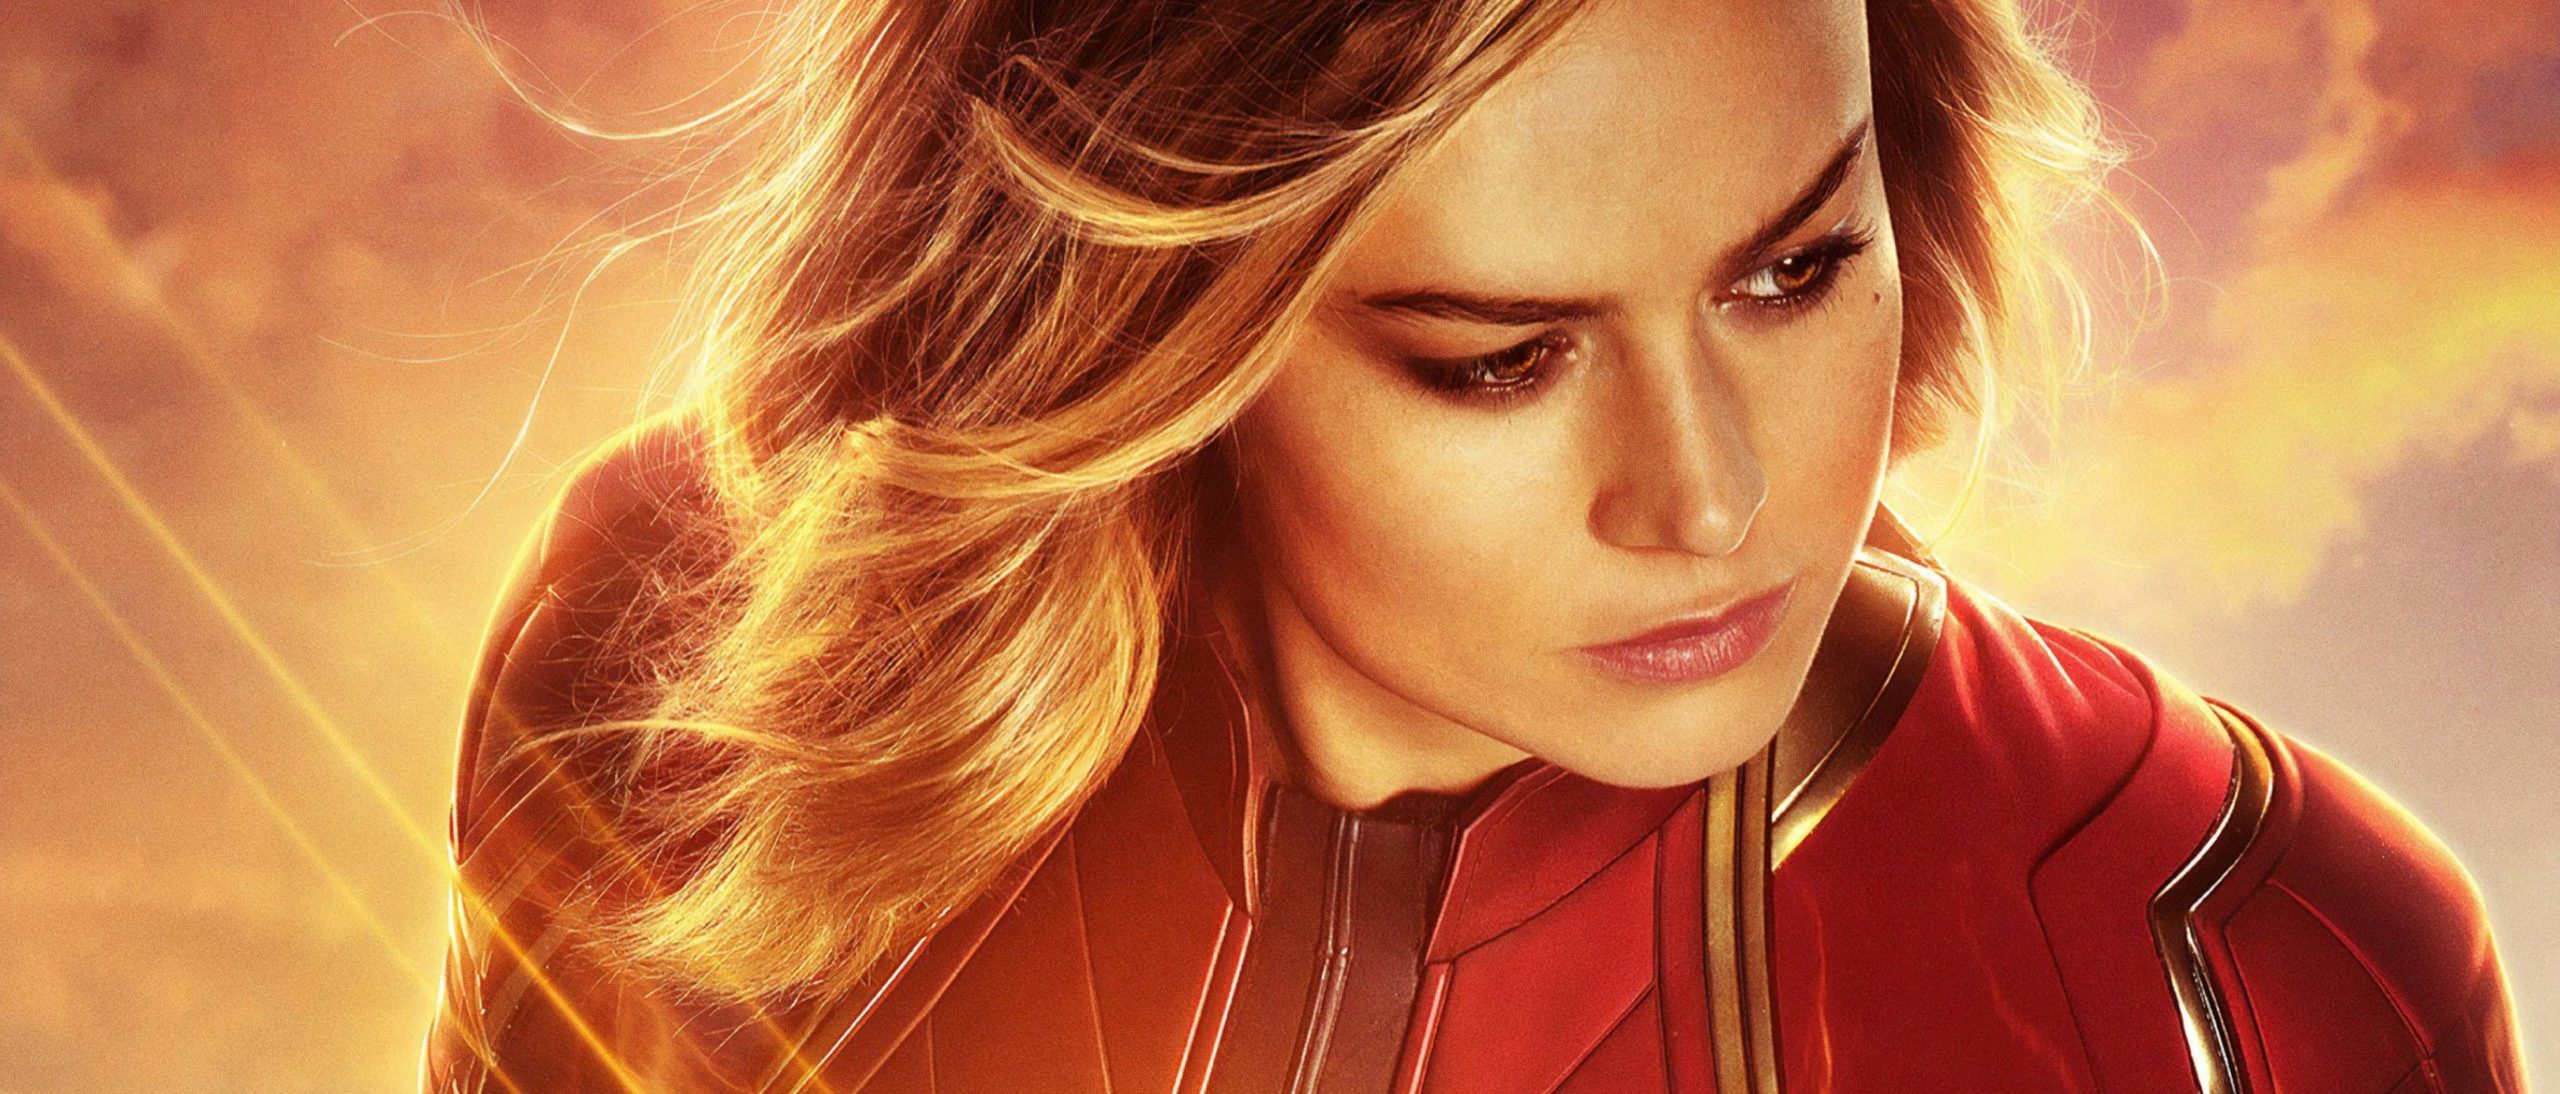 Captain Marvel 2 MCU Brie Larson Small Screen pop culture